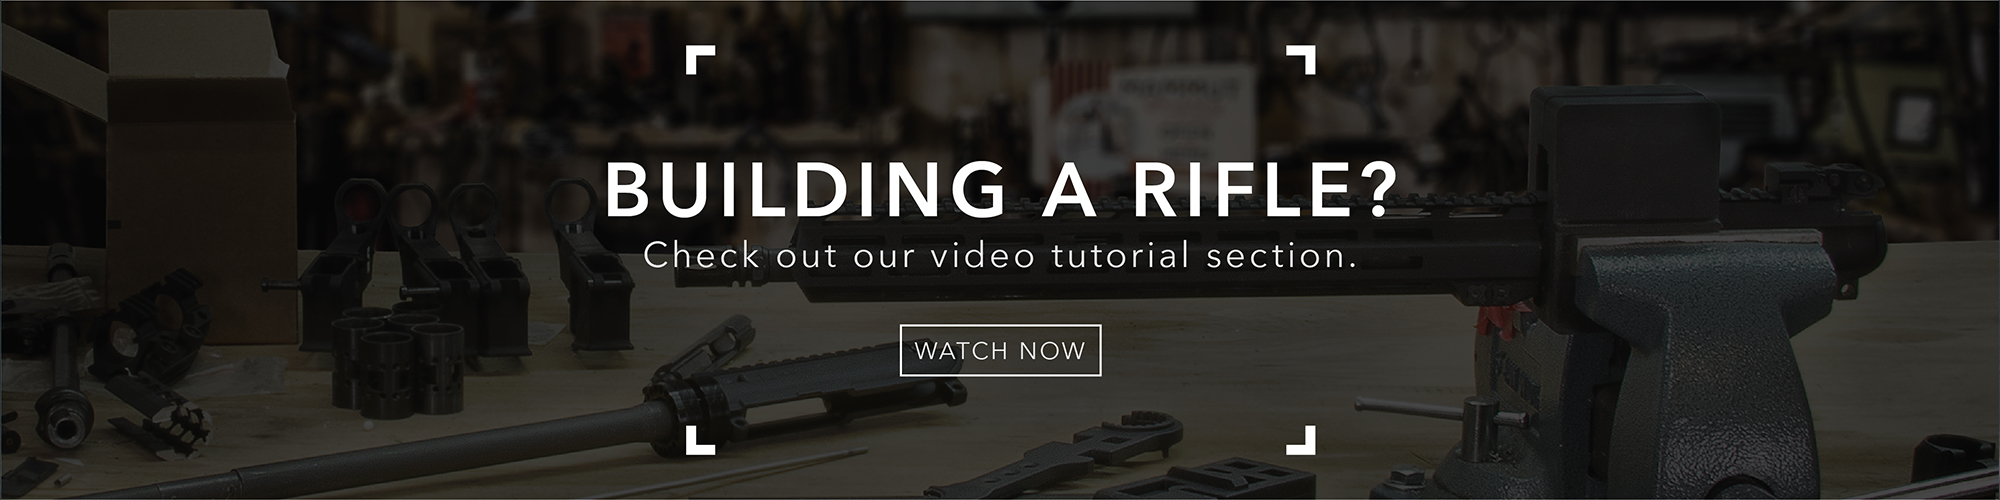 build a rifle video tutorial banner